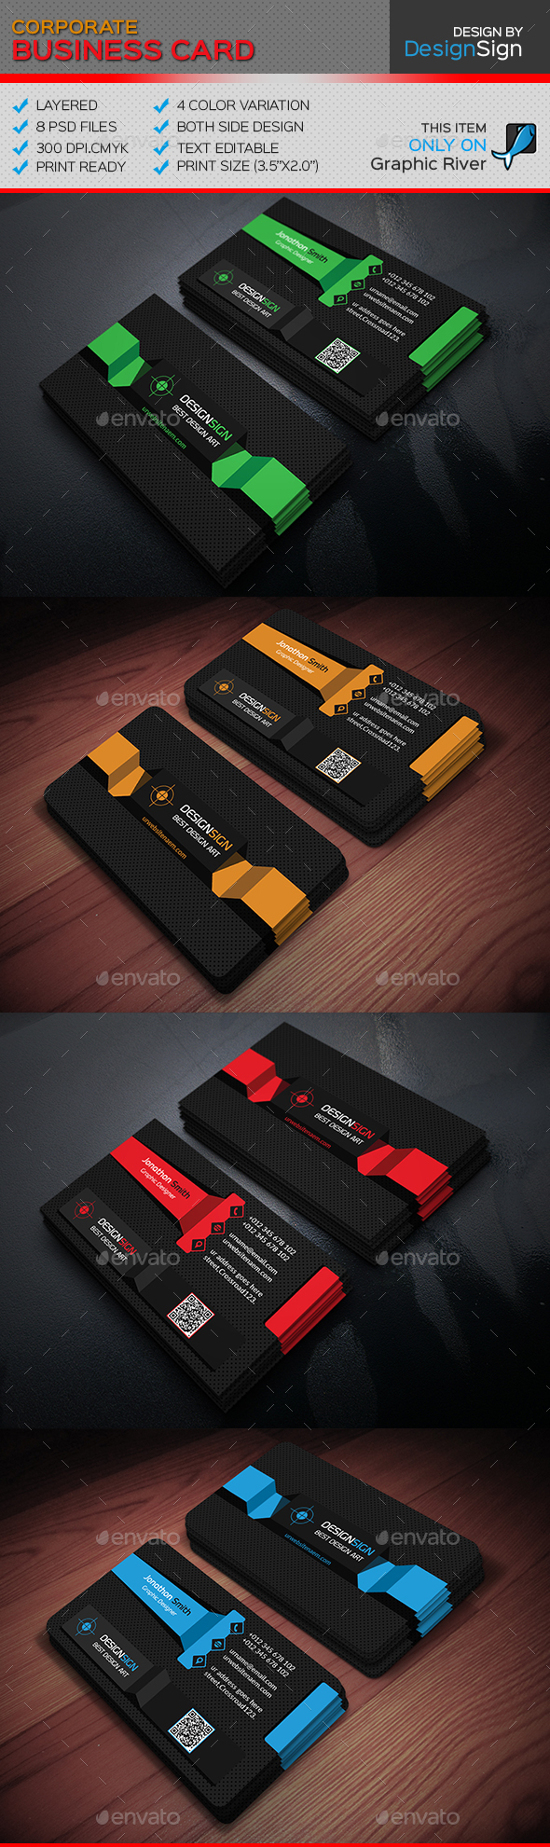 17 best business card templates for corporate business card templates wajeb